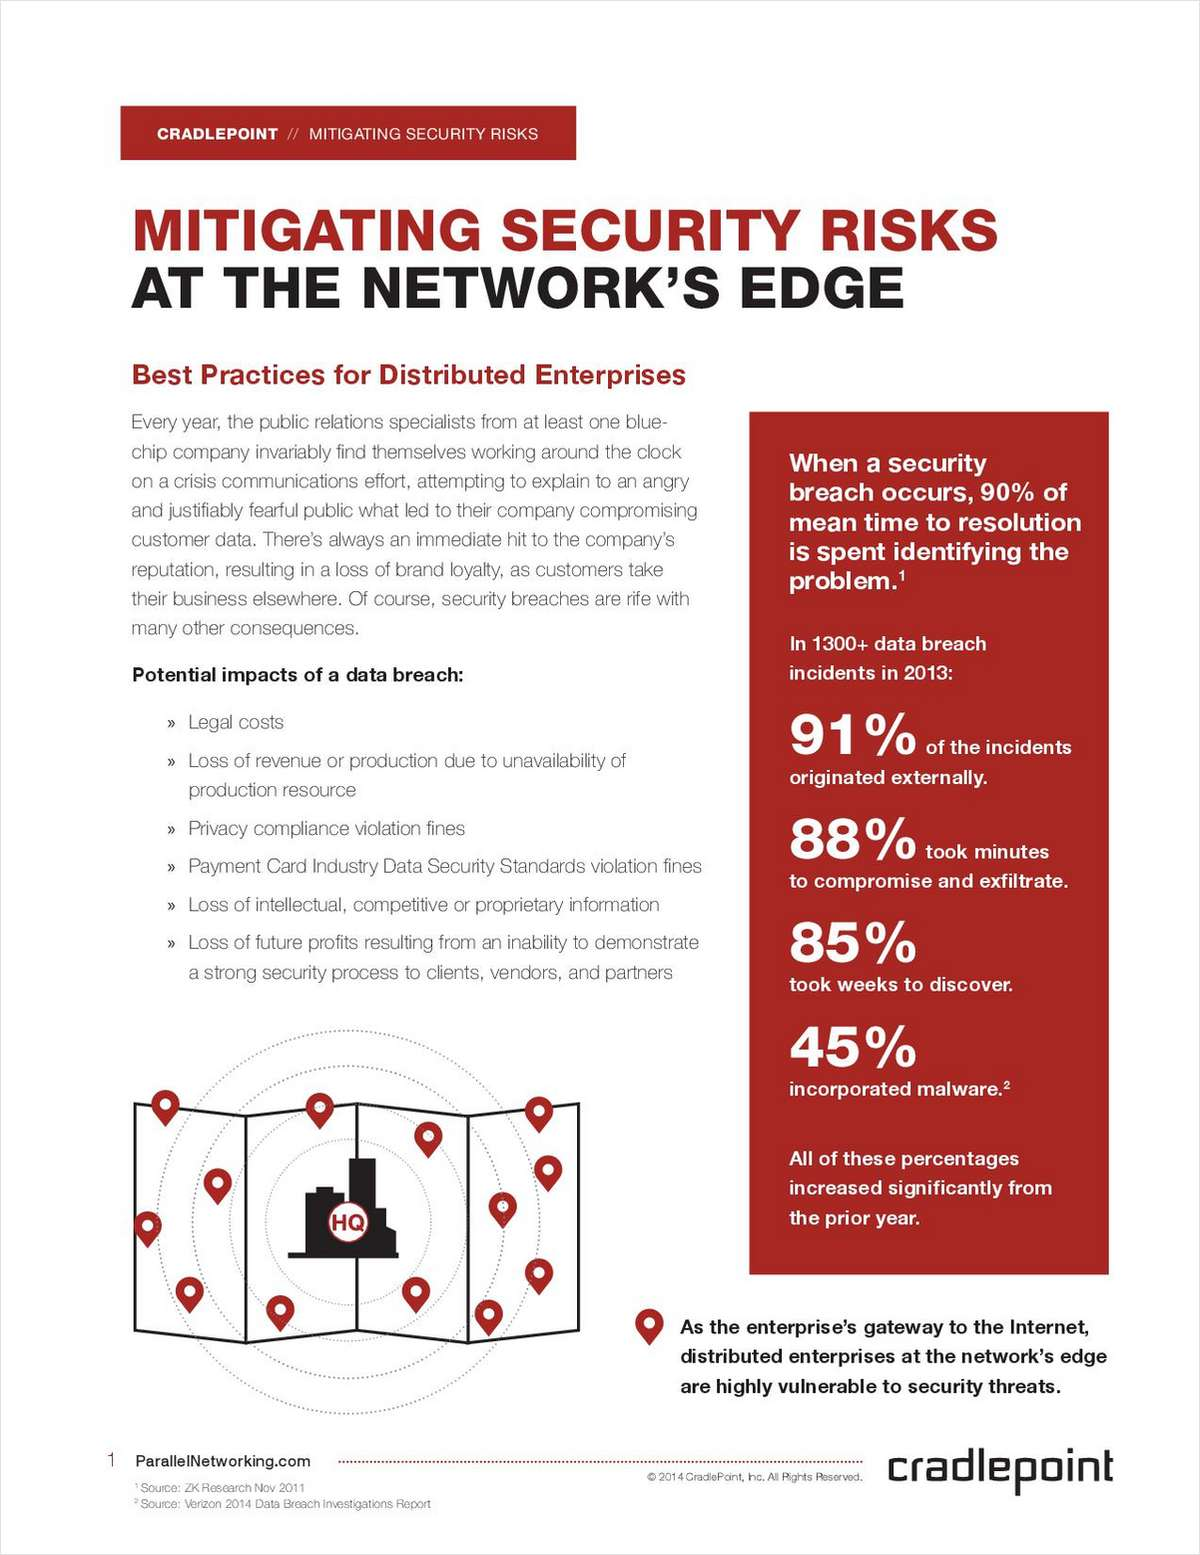 Mitigating Security Risks at the Network's Edge